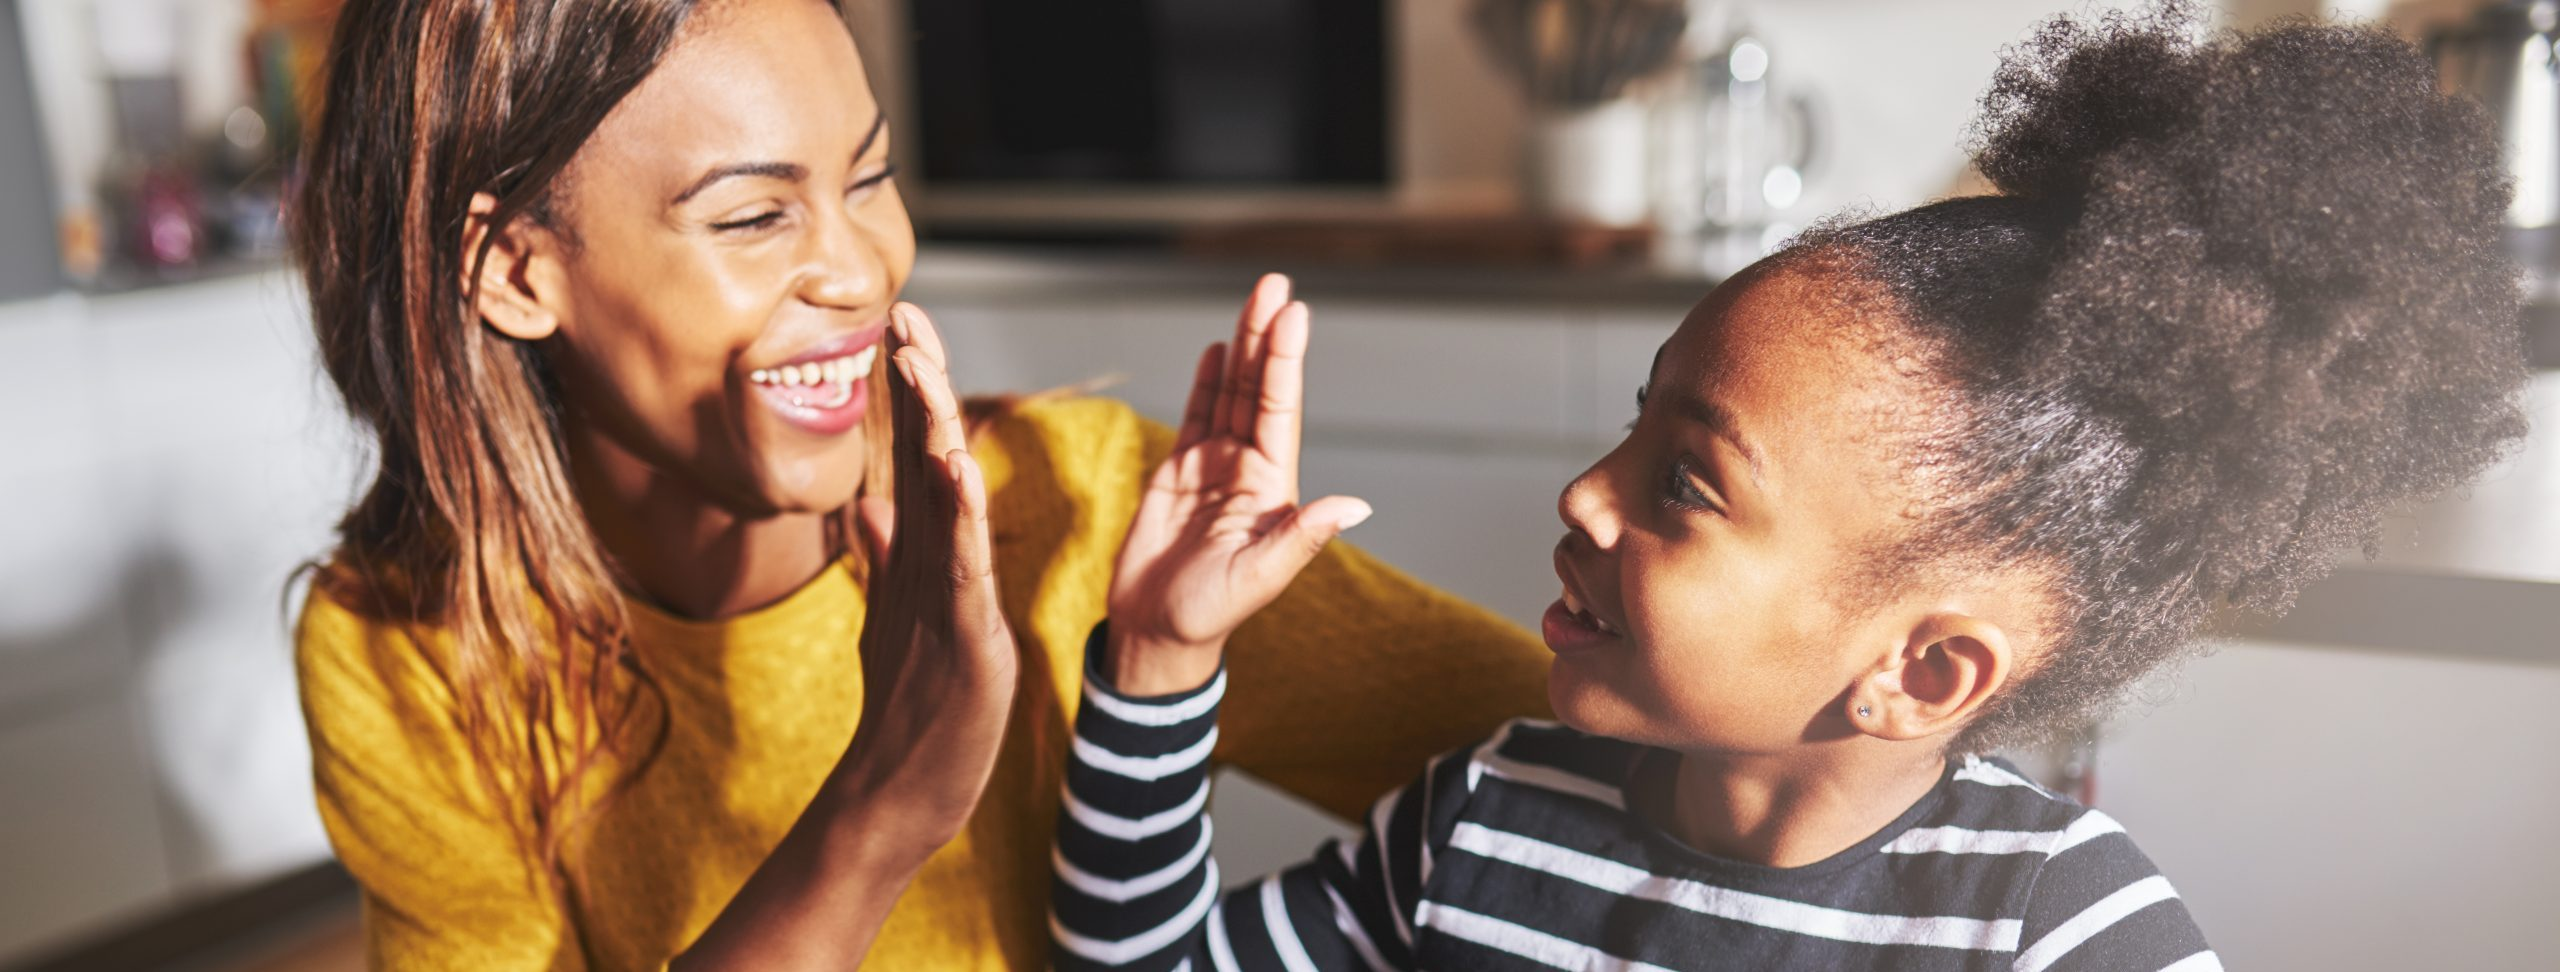 Family Prosperity: 10 Minutes with a Leading Early Childhood Researcher on Home-Based Care and Opportunities Ahead